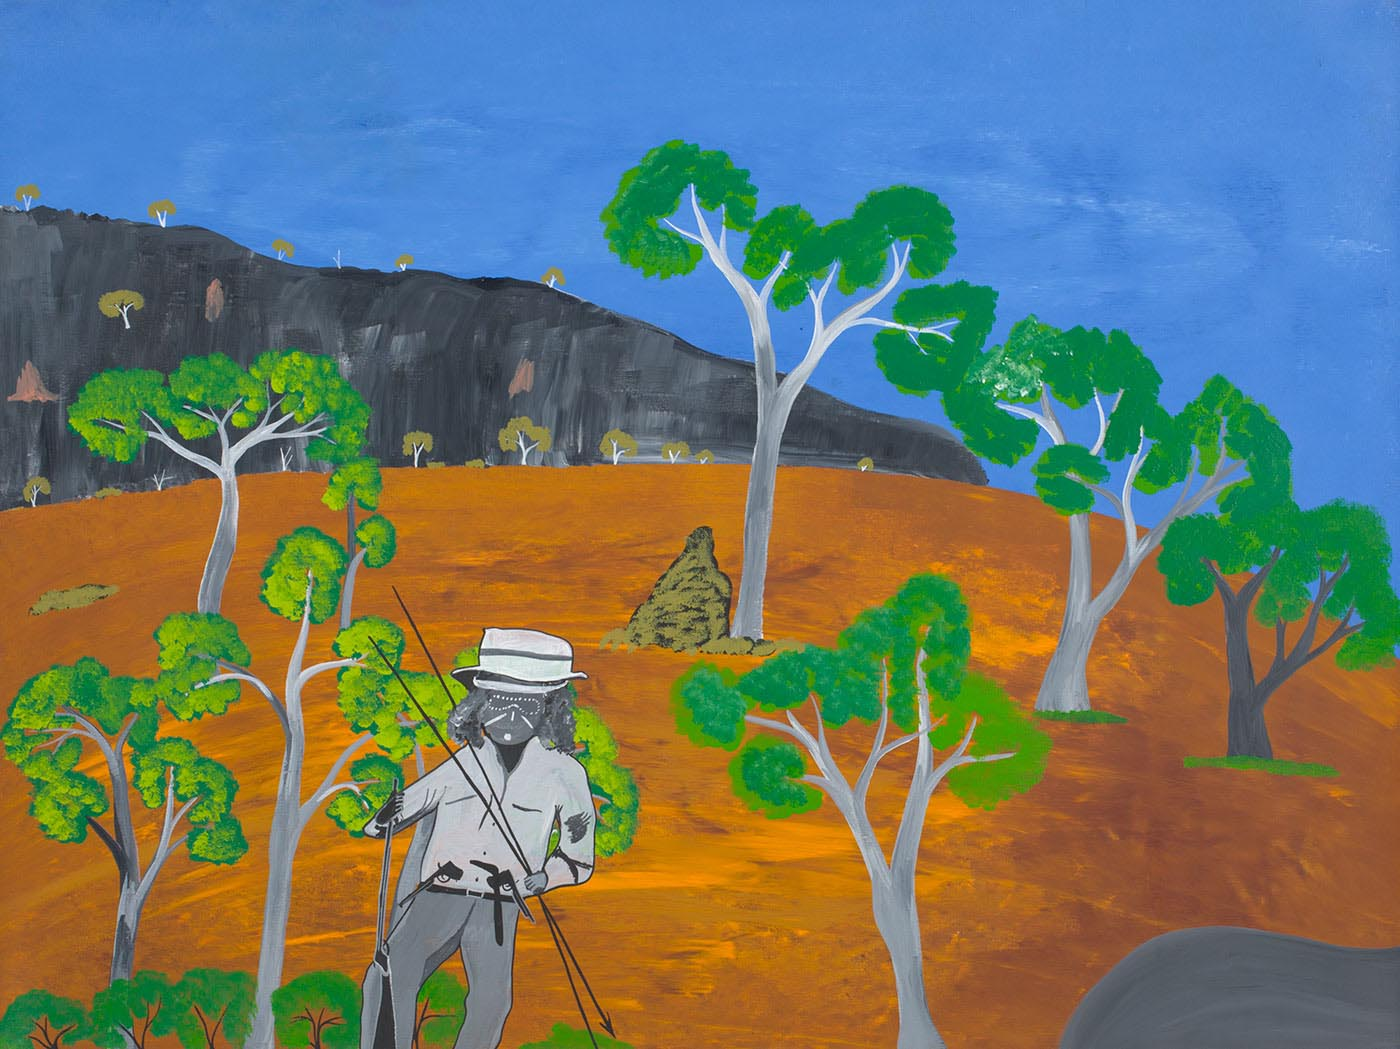 An acrylic painting on canvas depicting an Aboriginal man standing amidst a landscape.